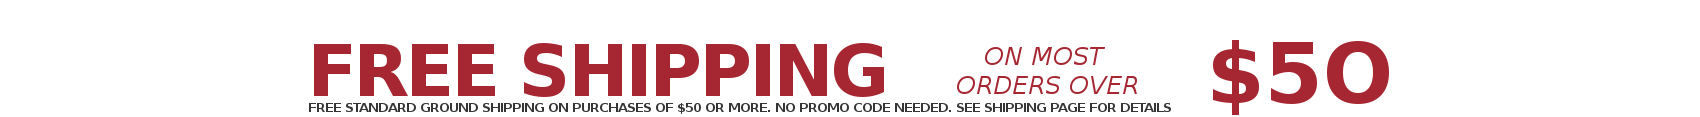 free_shipping_banner_2018